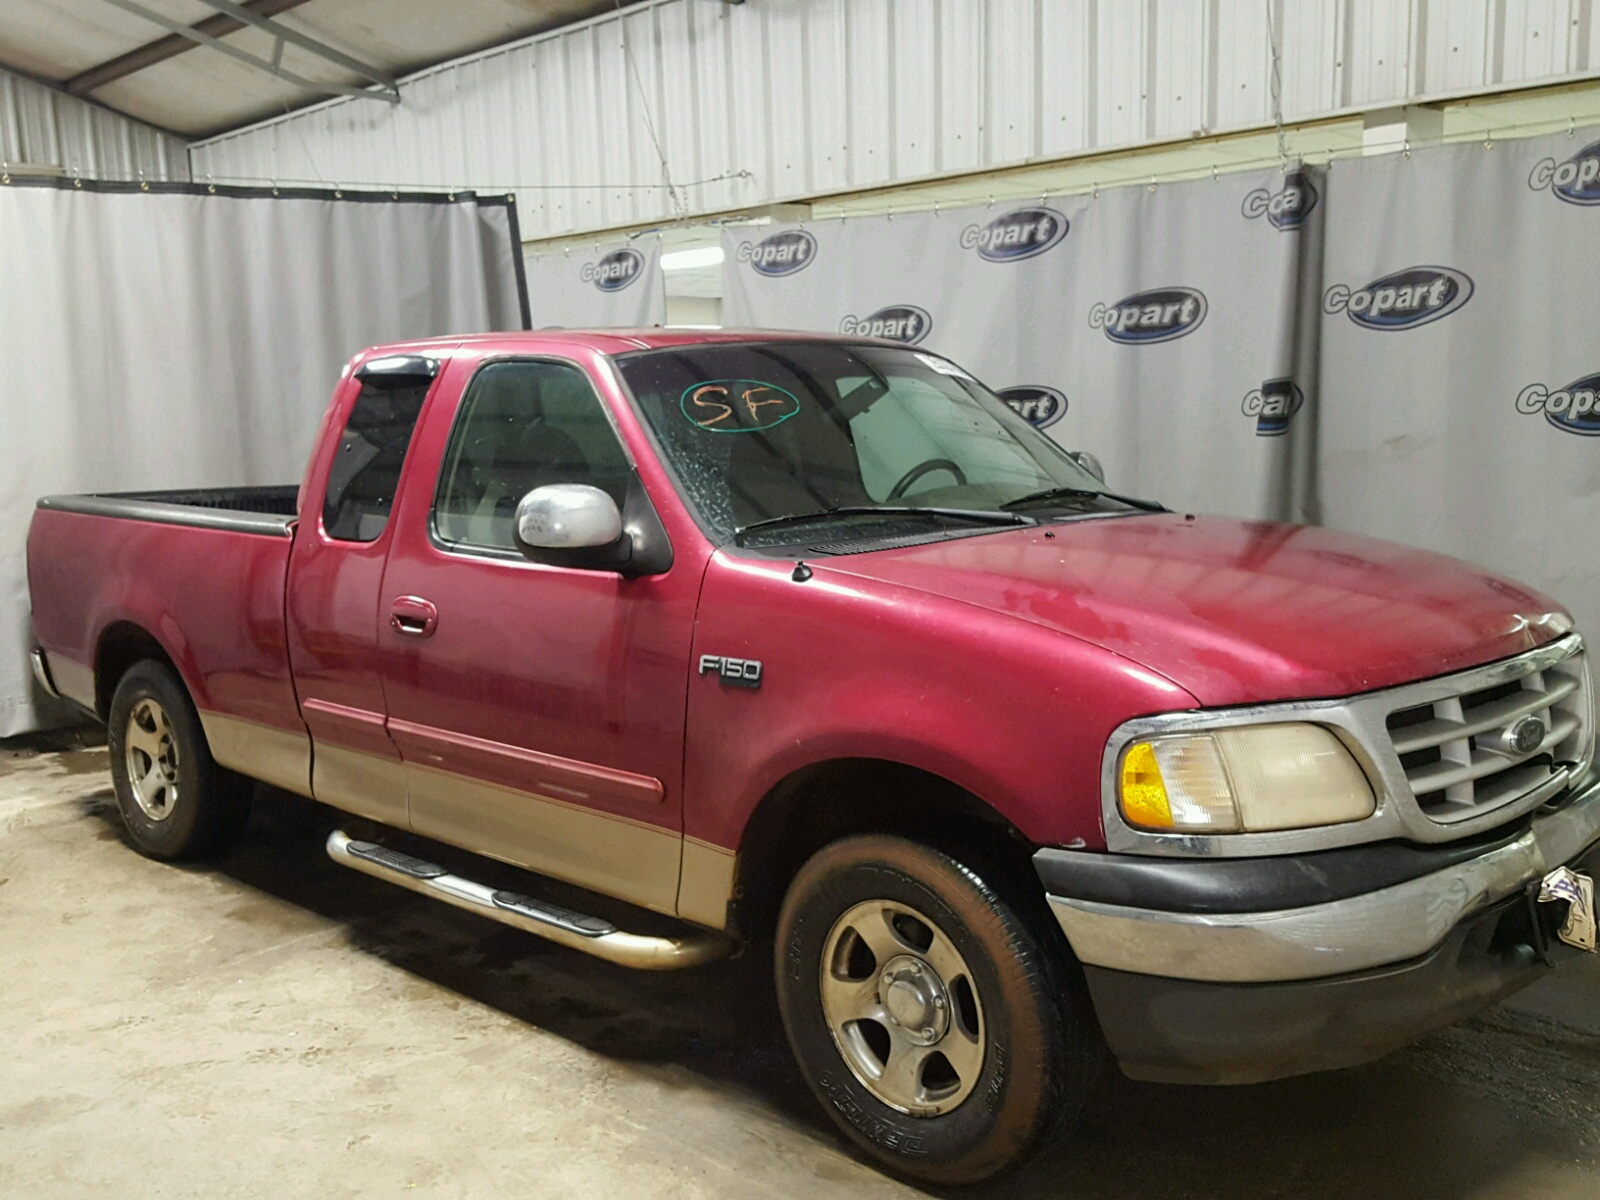 auto auction ended on vin 1ft7w2bt8heb52221 2017 ford f250 super in tx houston. Black Bedroom Furniture Sets. Home Design Ideas